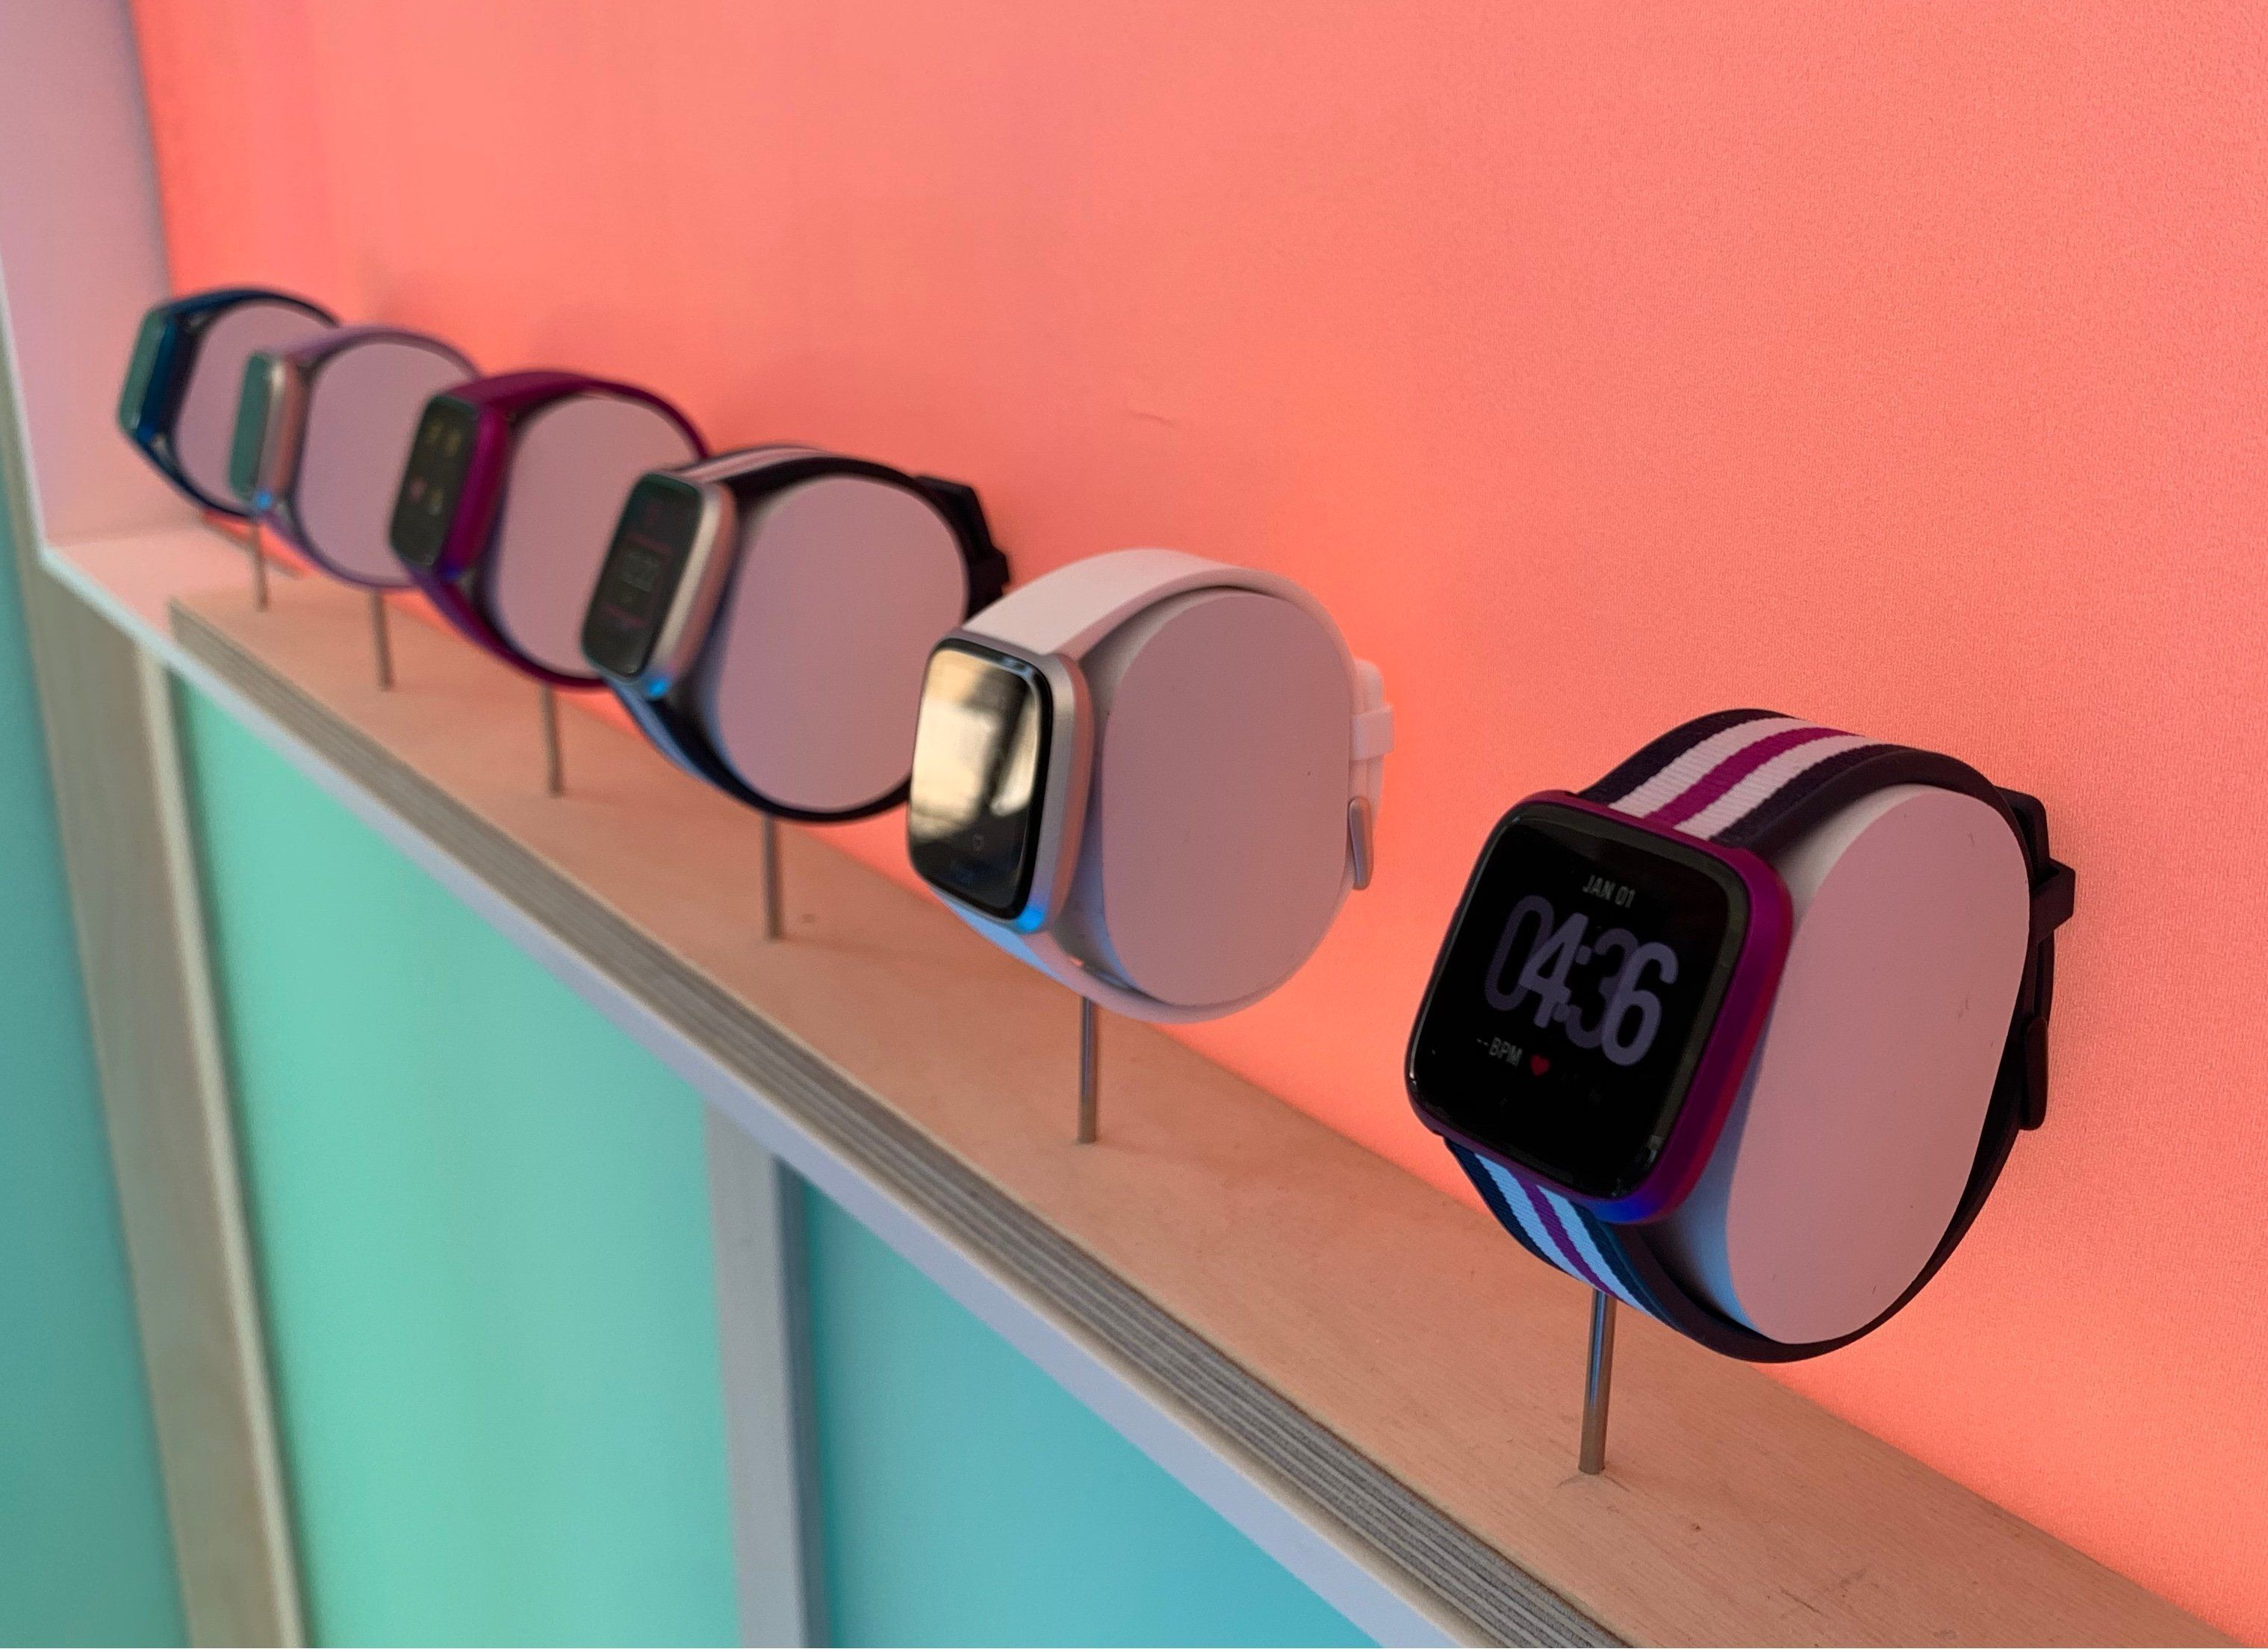 Fitbit unveils 4 new wearables ahead of premium health